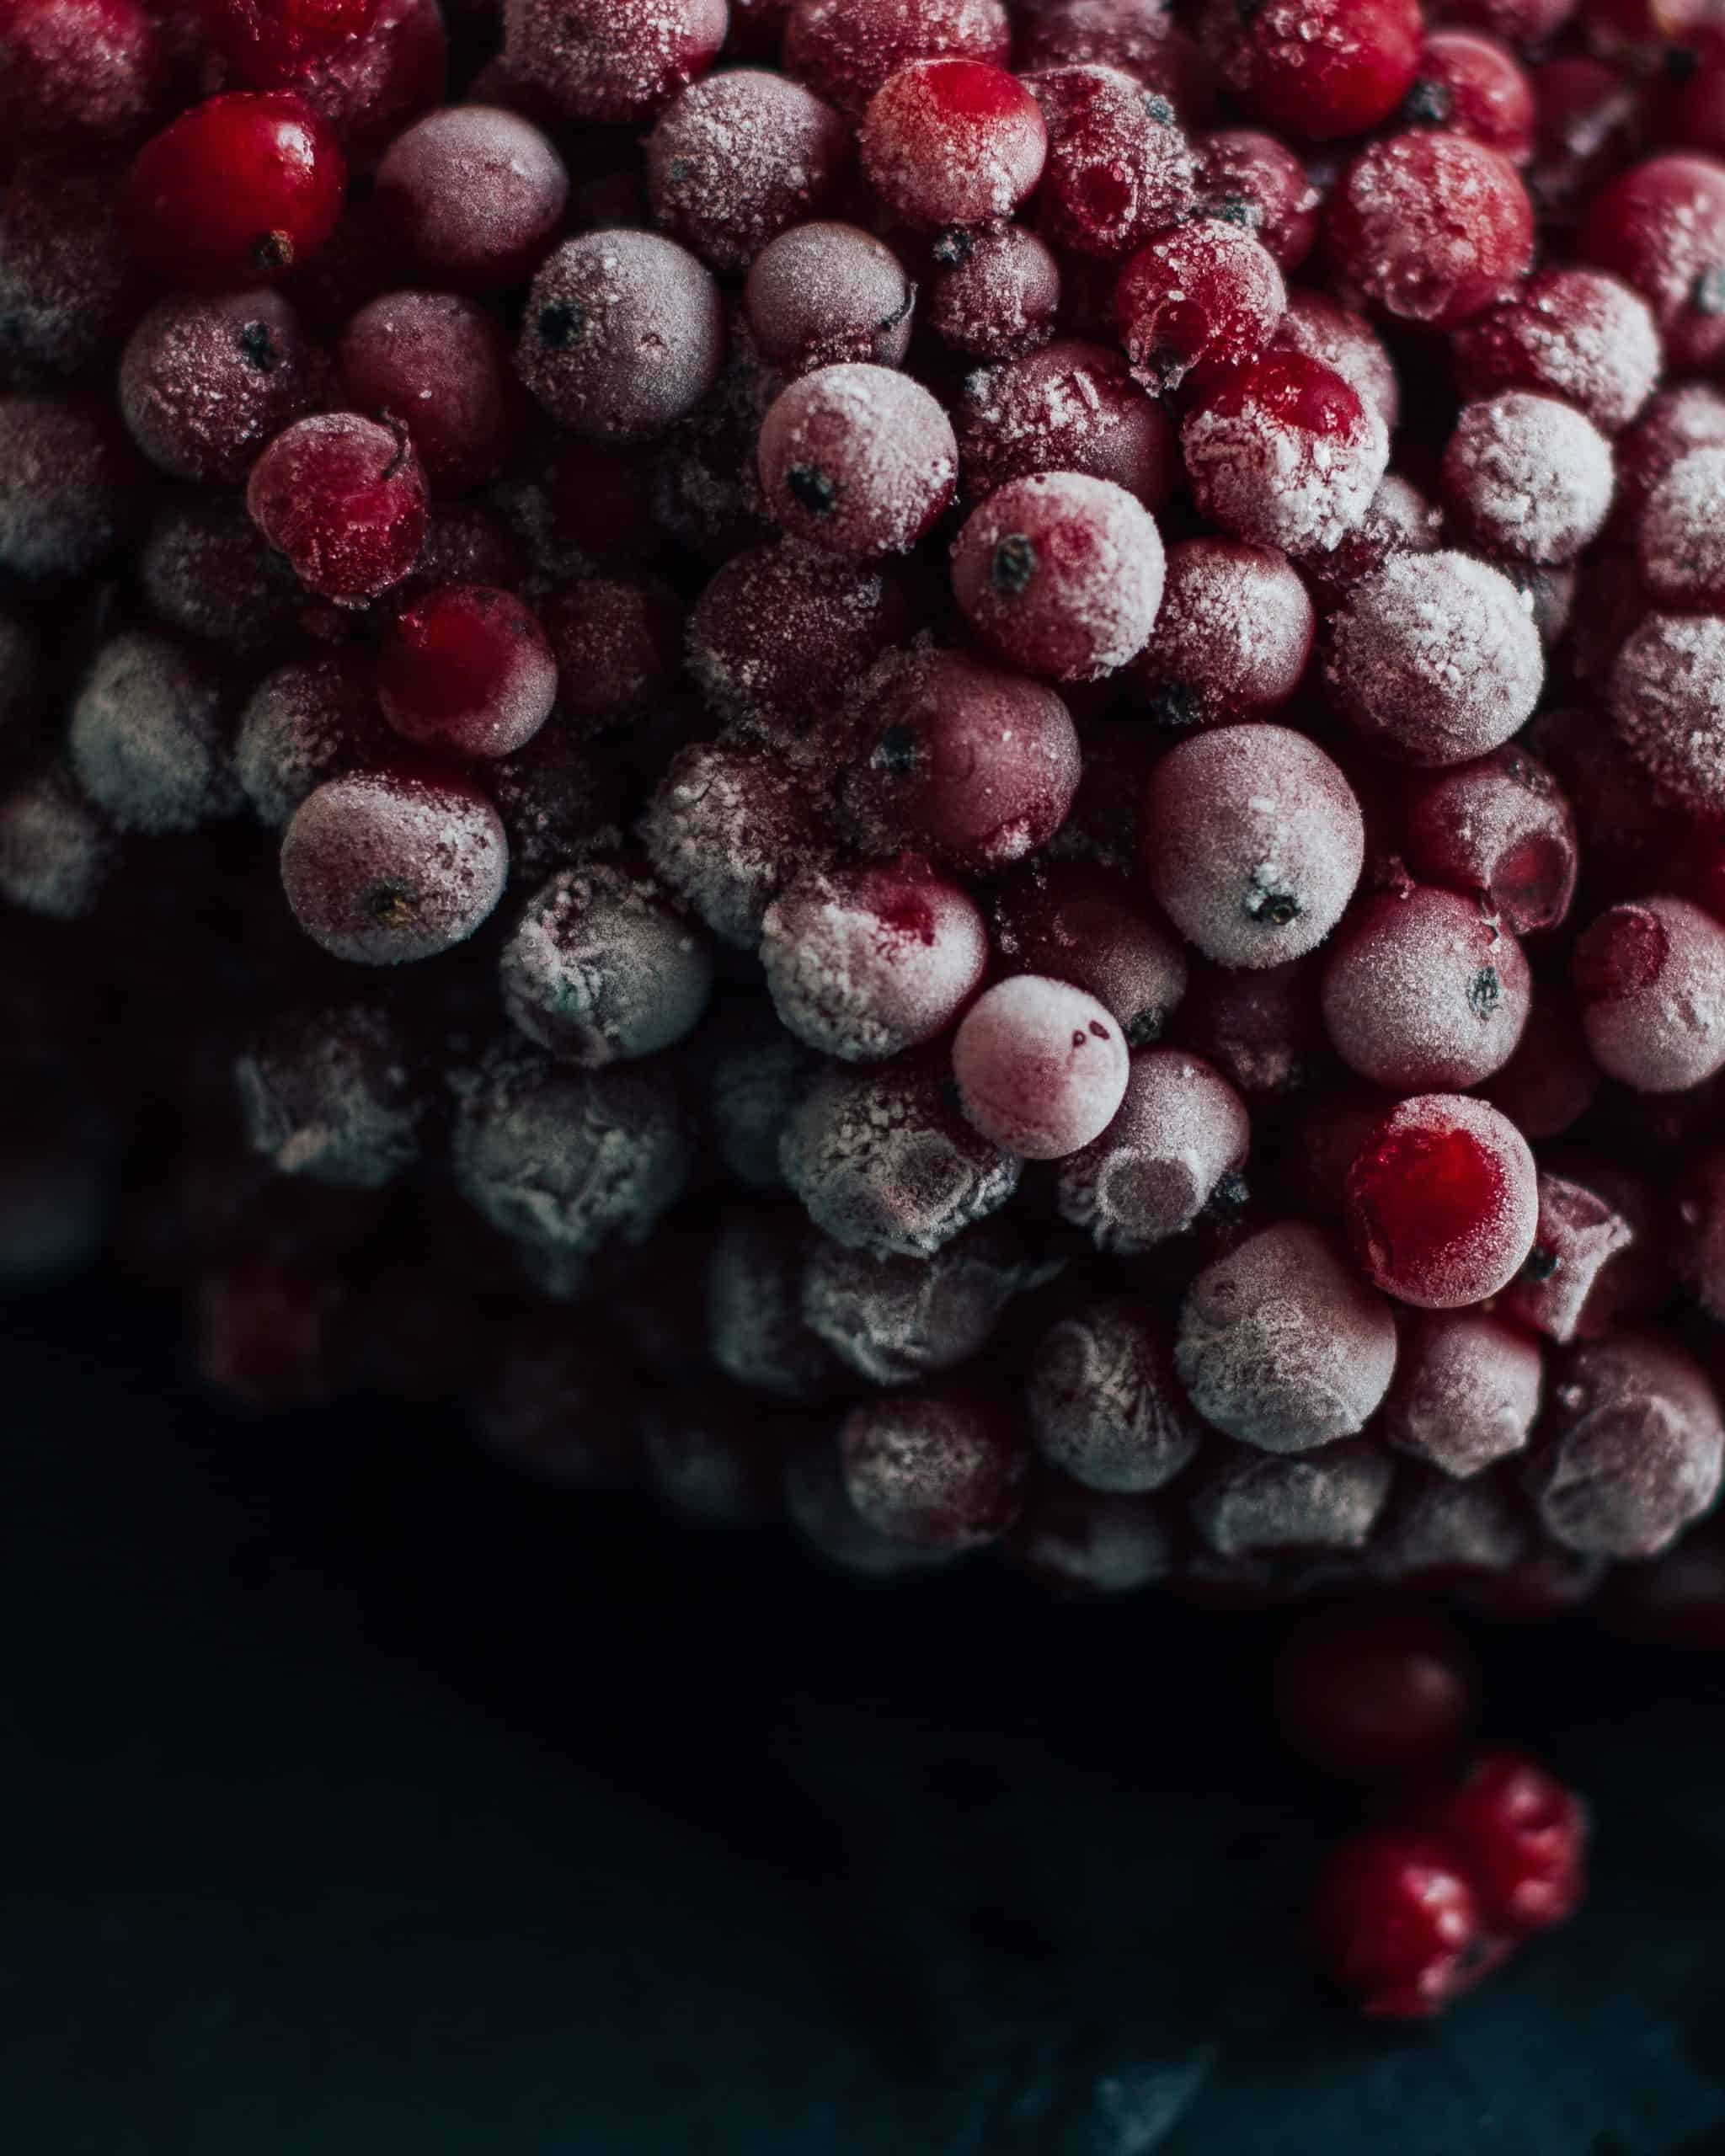 Acai Berry Facts - Are They Really Safe For You?